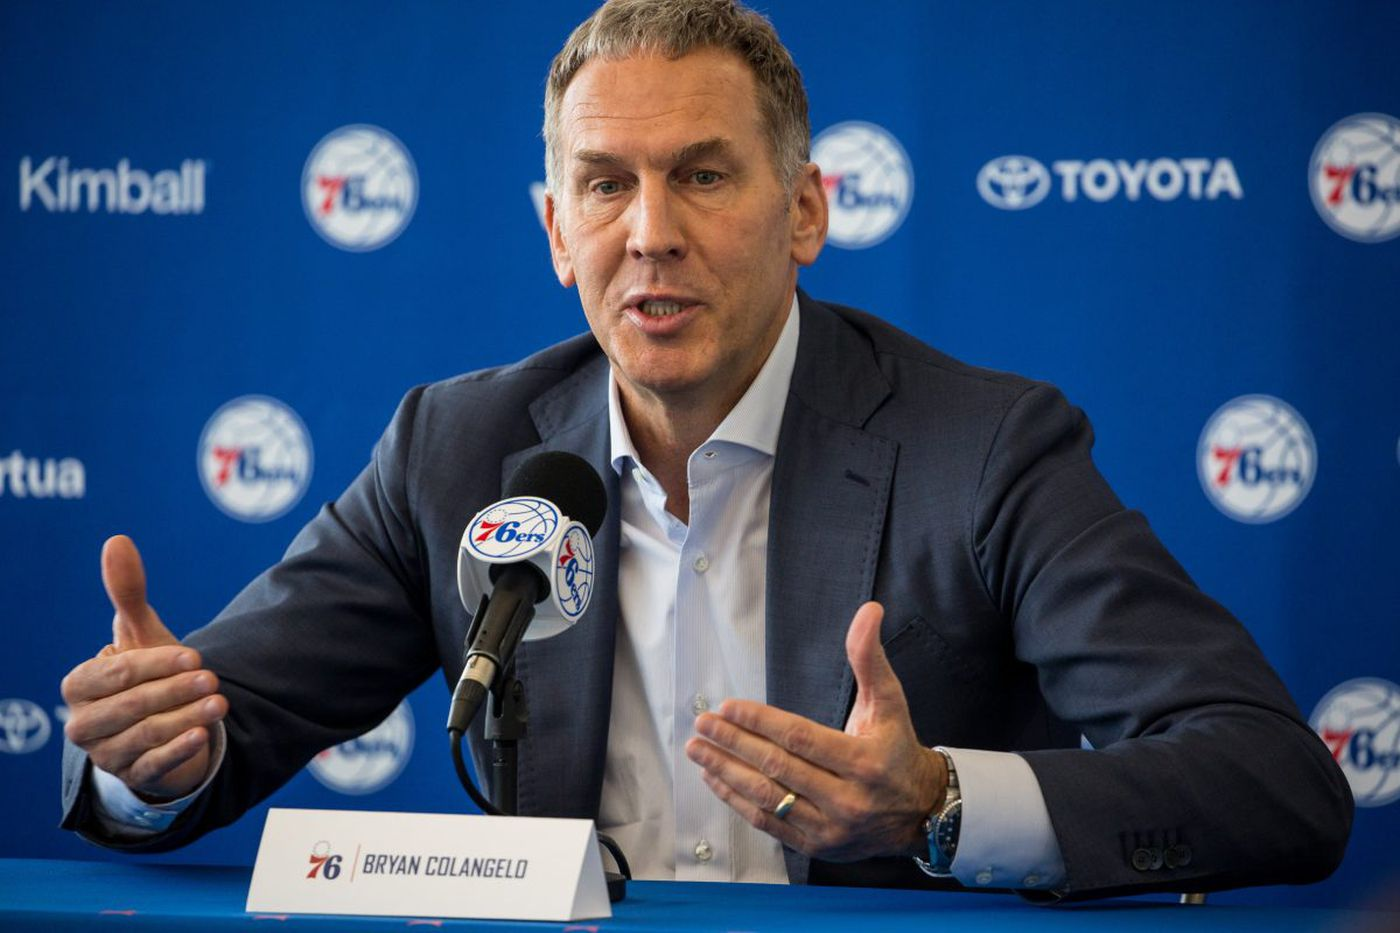 Bryan Colangelo's Twitter scandal: What we know and don't know